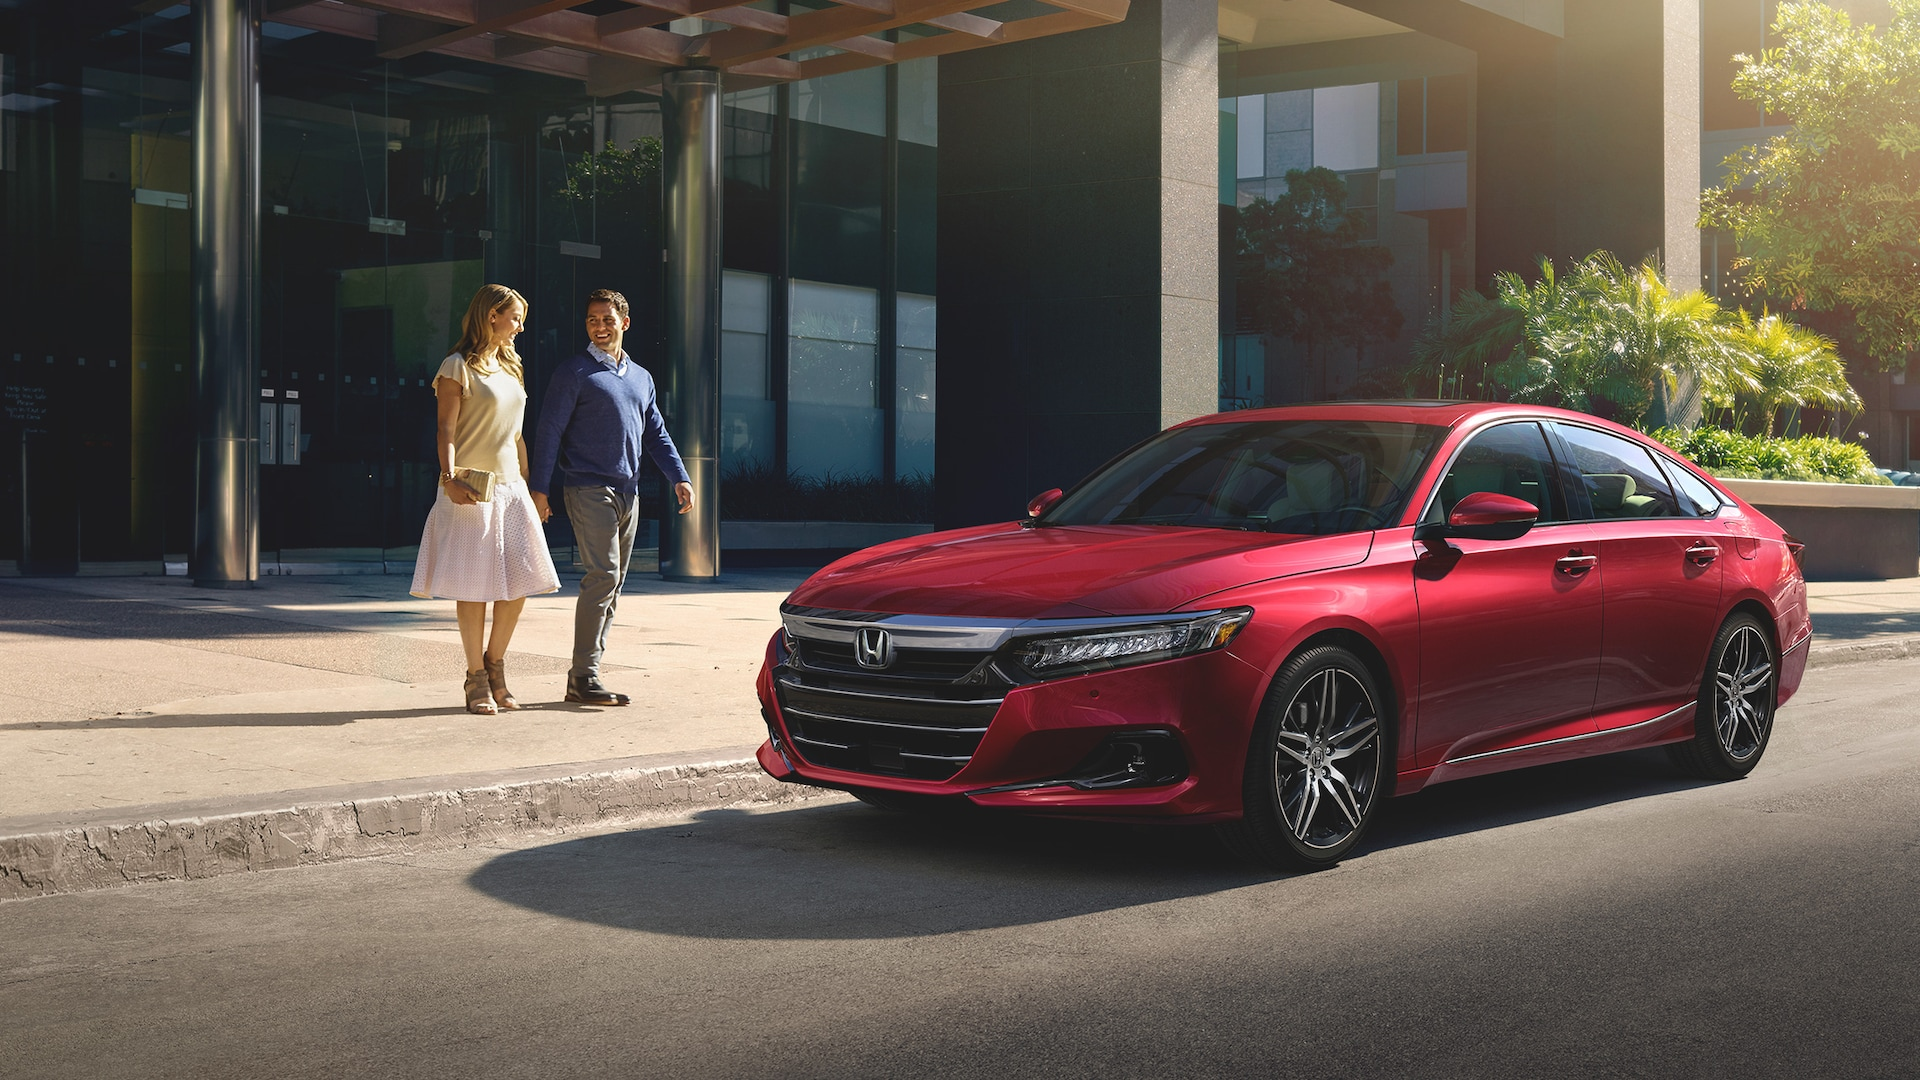 Front three-quarter driver-side view of the 2021 Accord Touring 2.0T, shown in Radiant Red Metallic, parked in an urban environment and with a young couple approaching.